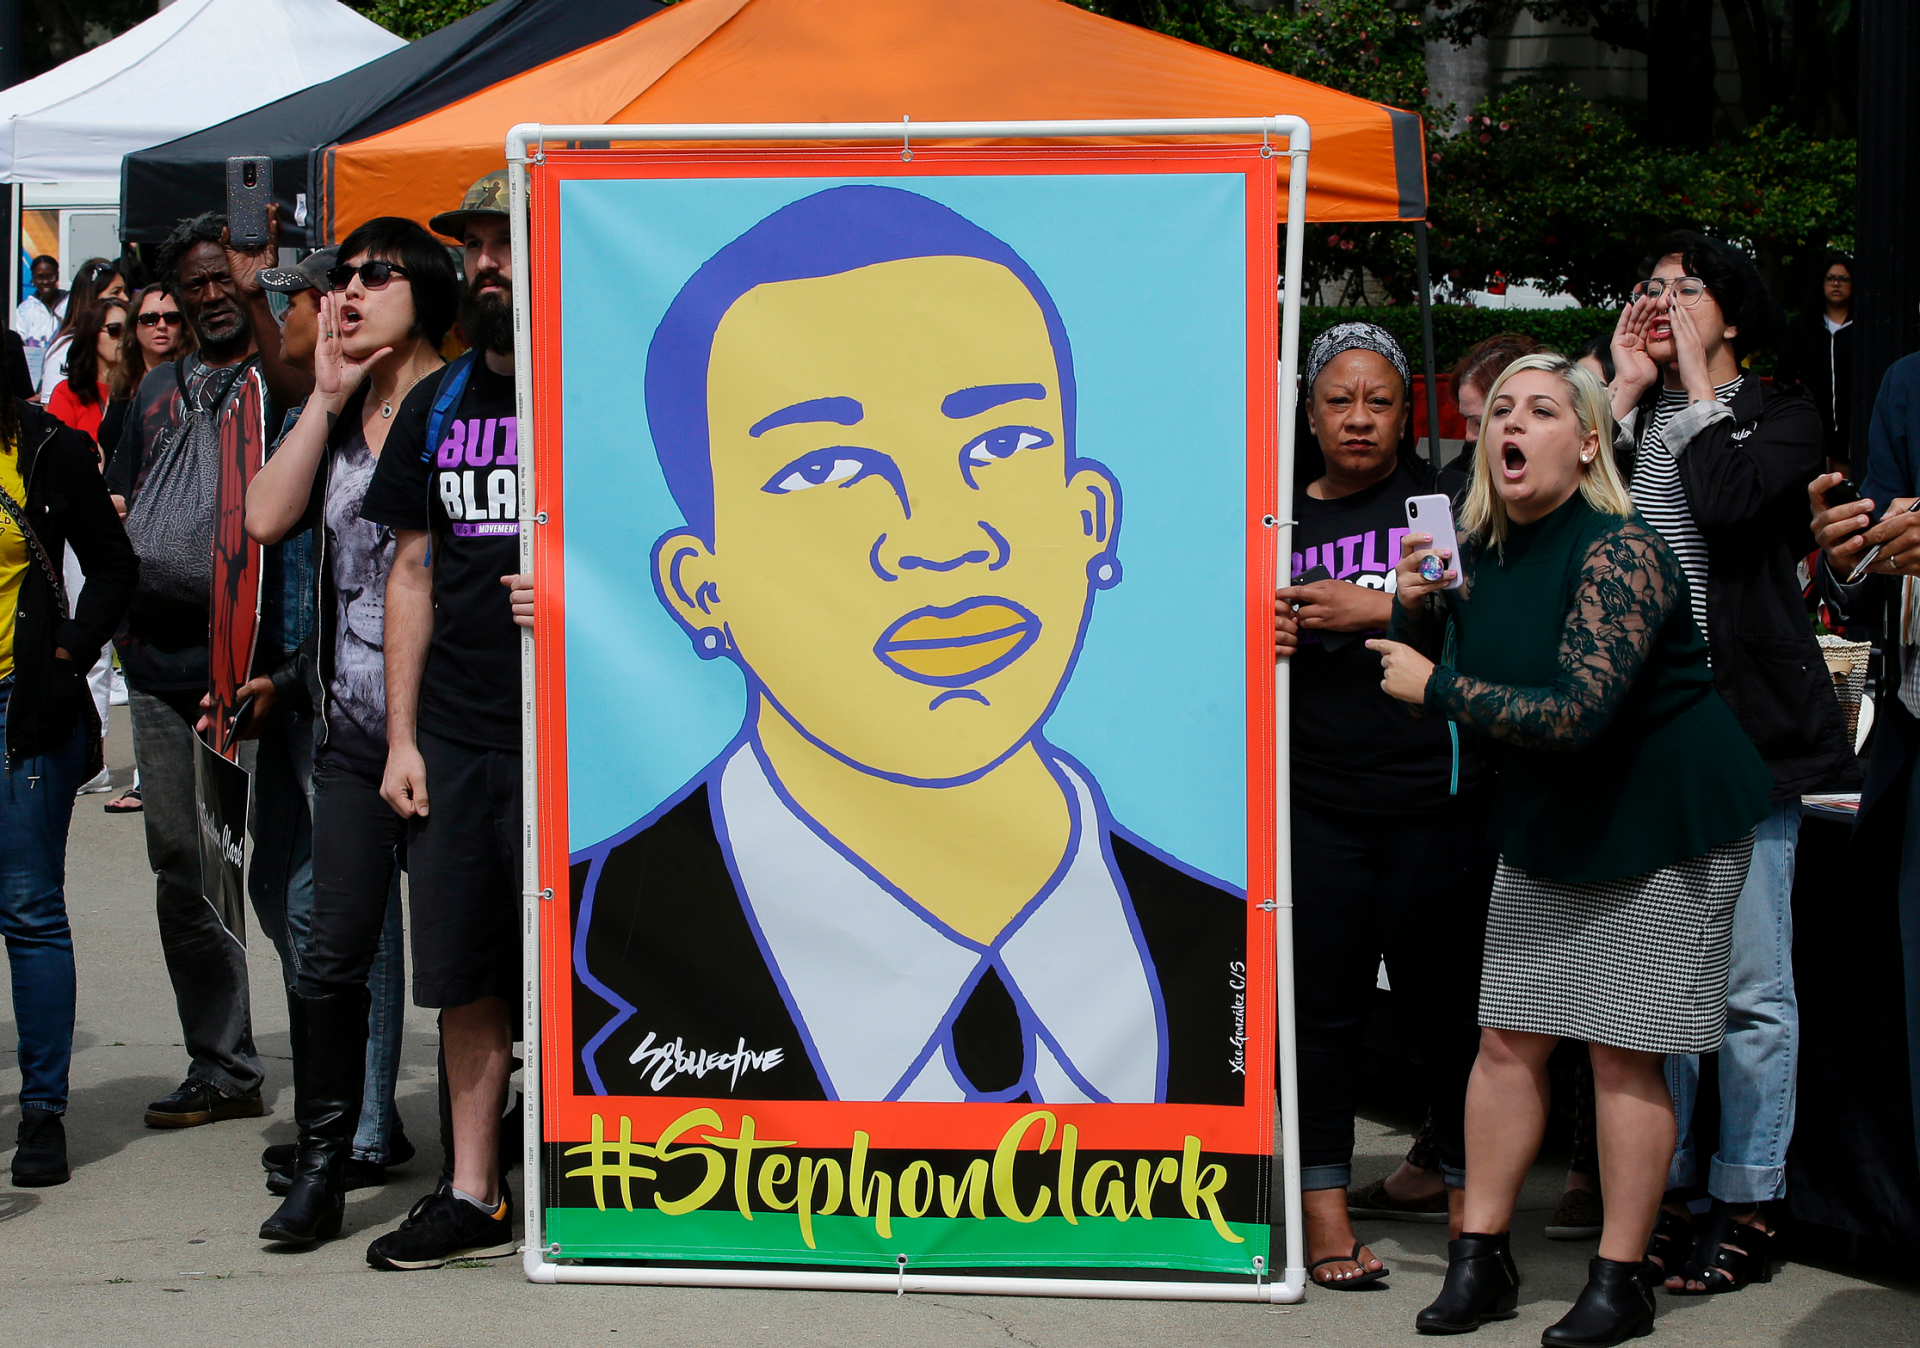 Westlake Legal Group ContentBroker_contentid-18d58d10f98f4b2184aeb3a839490a0b Stephon Clark shooting: No civil rights charges, officers will return to active-duty in Sacramento fox-news/us/us-regions/west/california fox-news/us/crime/police-and-law-enforcement fox news fnc/us fnc Danielle Wallace article 2ebd3022-049e-54af-9b08-b09d190c15fa